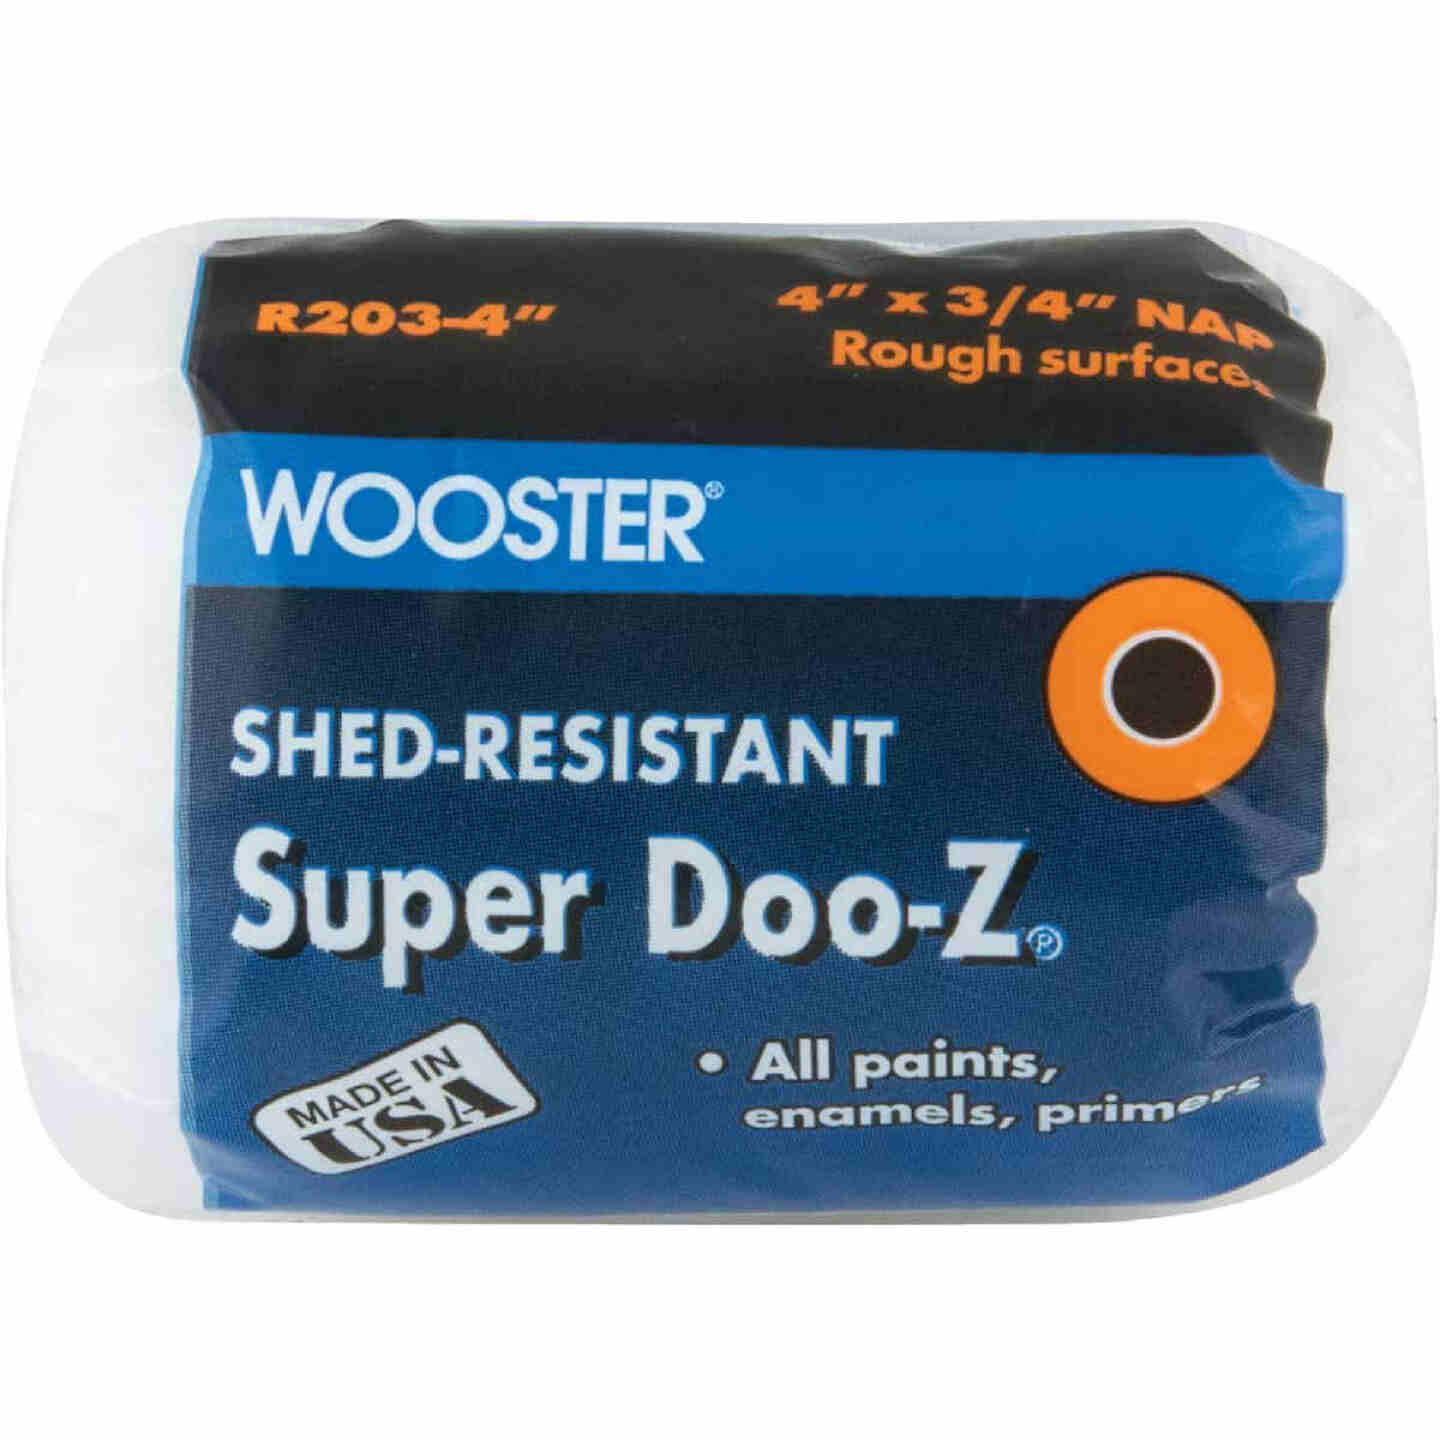 Wooster Super Doo-Z 4 In. x 3/4 In. Woven Fabric Roller Cover Image 1